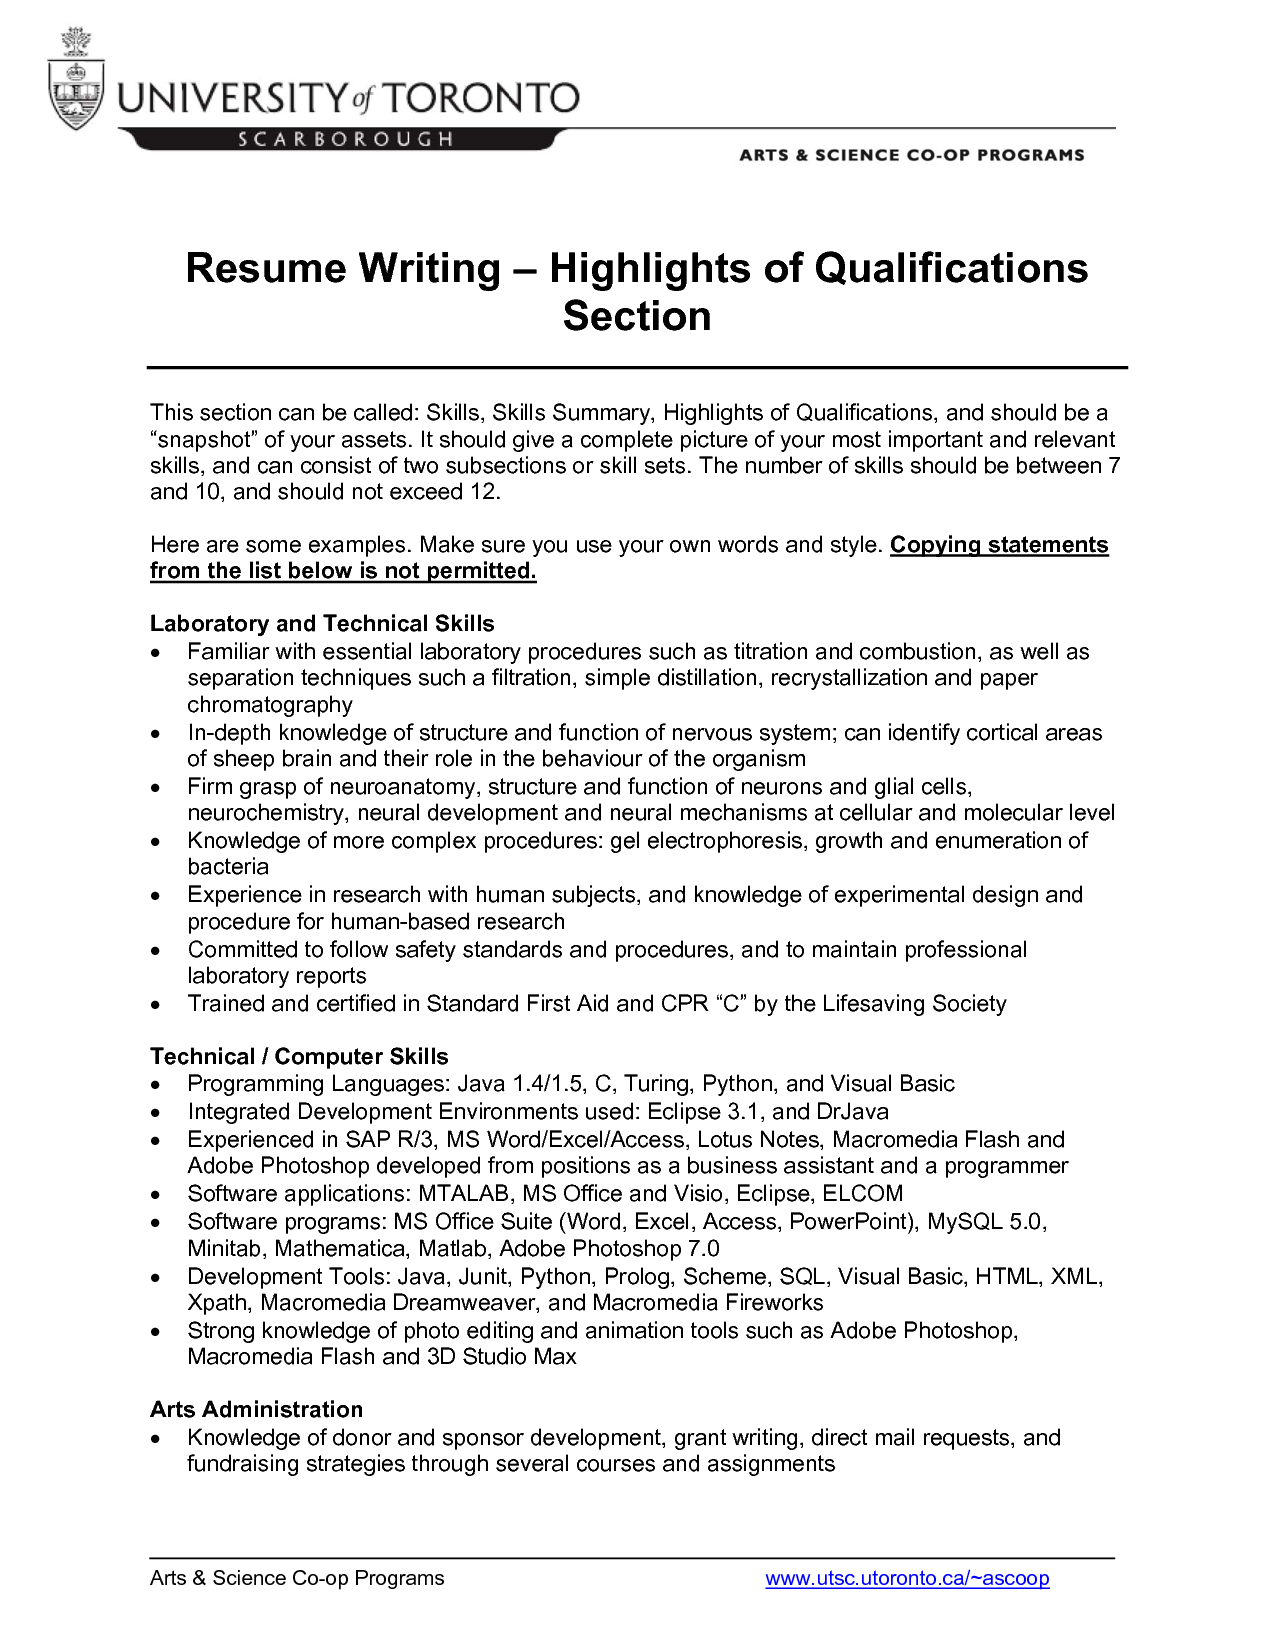 Captivating Buyretina.us In List Of Qualifications For Resume